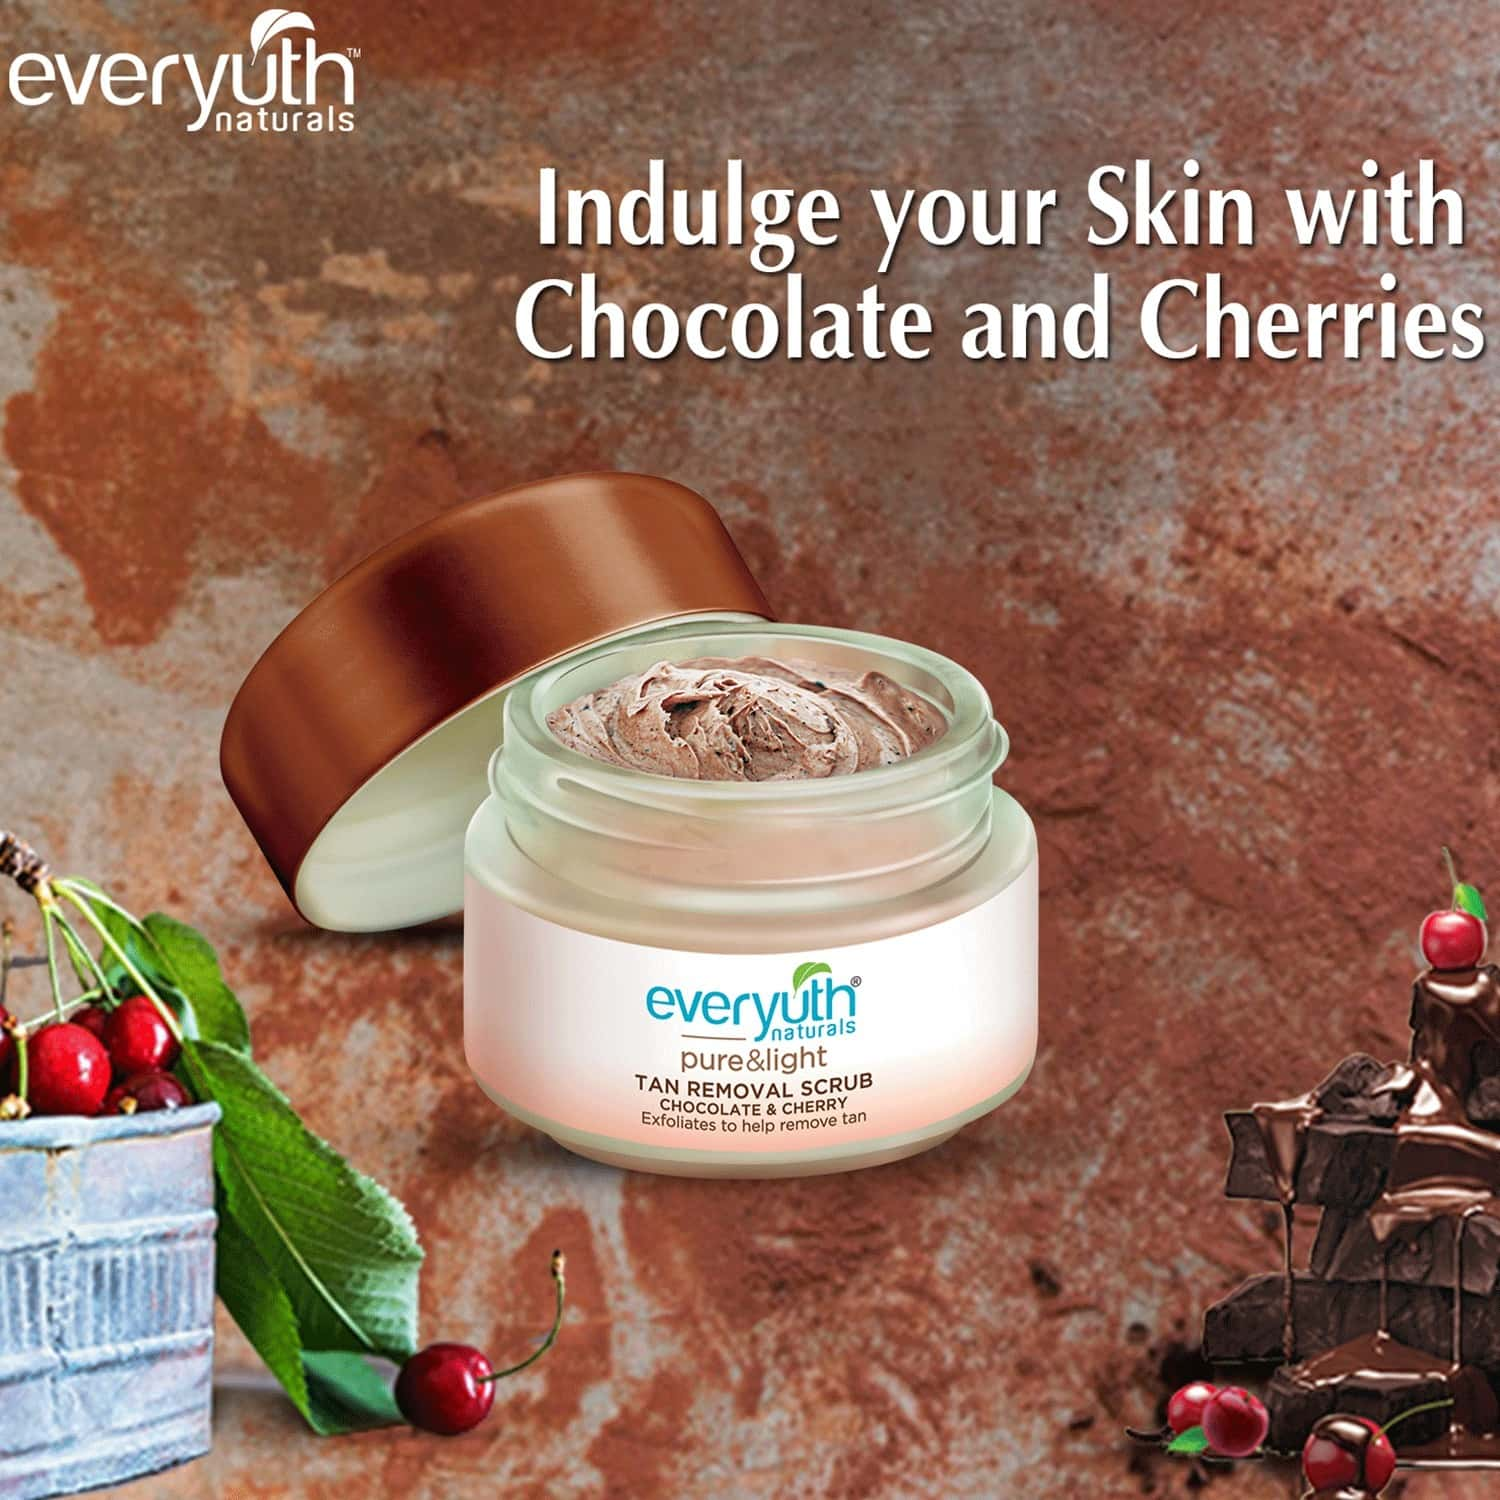 Everyuth Naturals Pure & Light Tan Removal Choco Cherry Face Scrub, 50 G